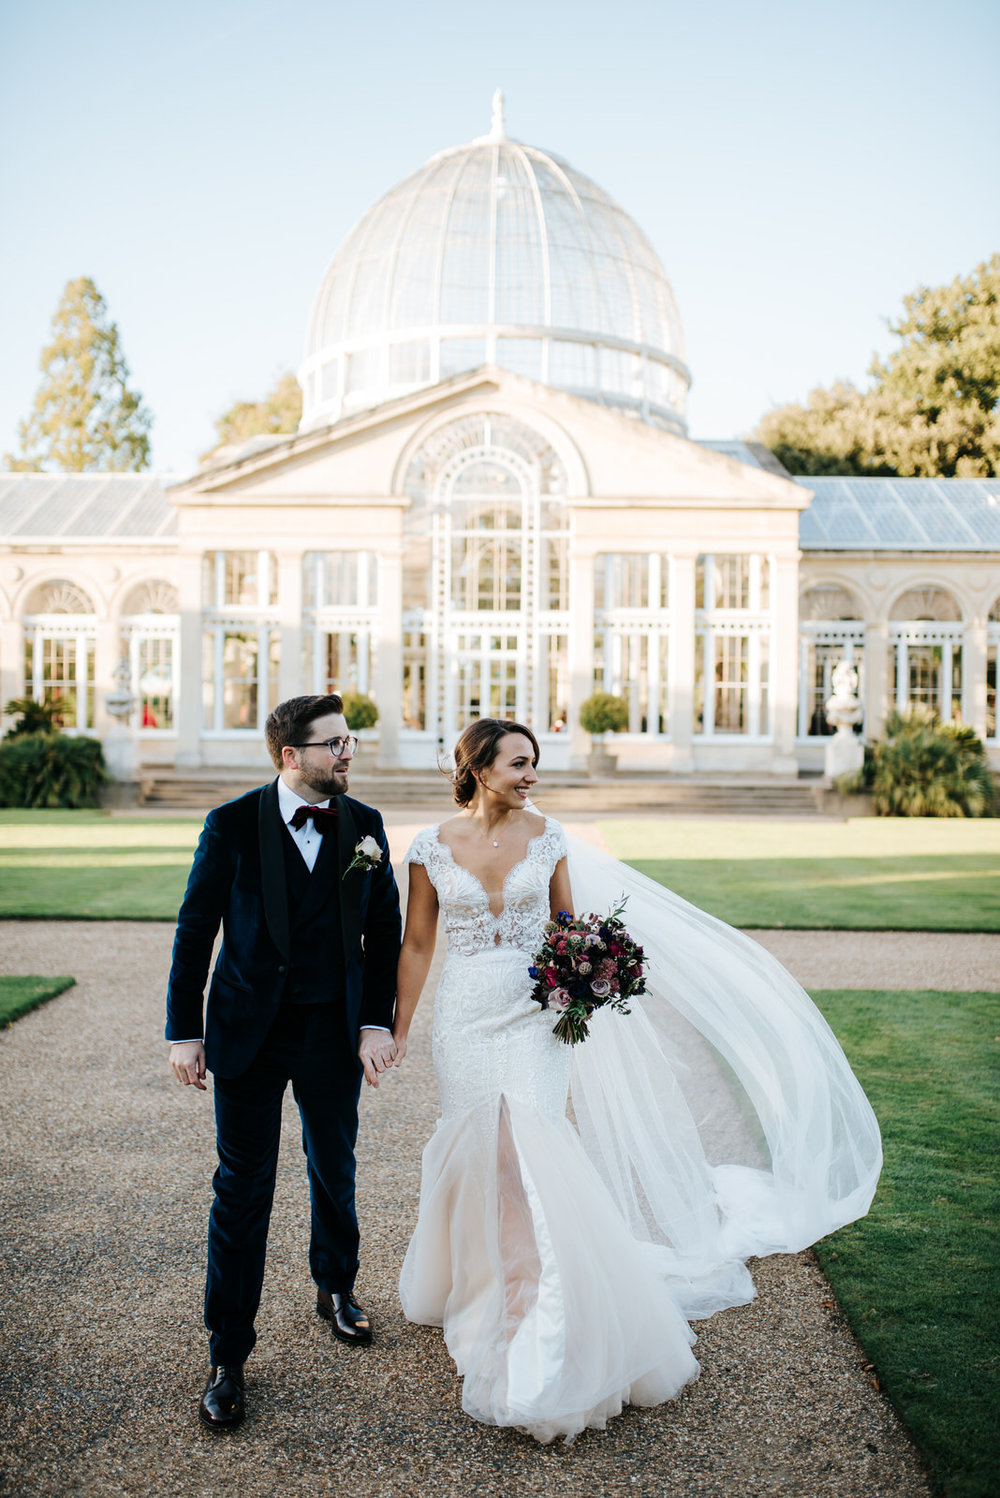 Bride and groom walk towards camera as great conservatory building towers from behind them